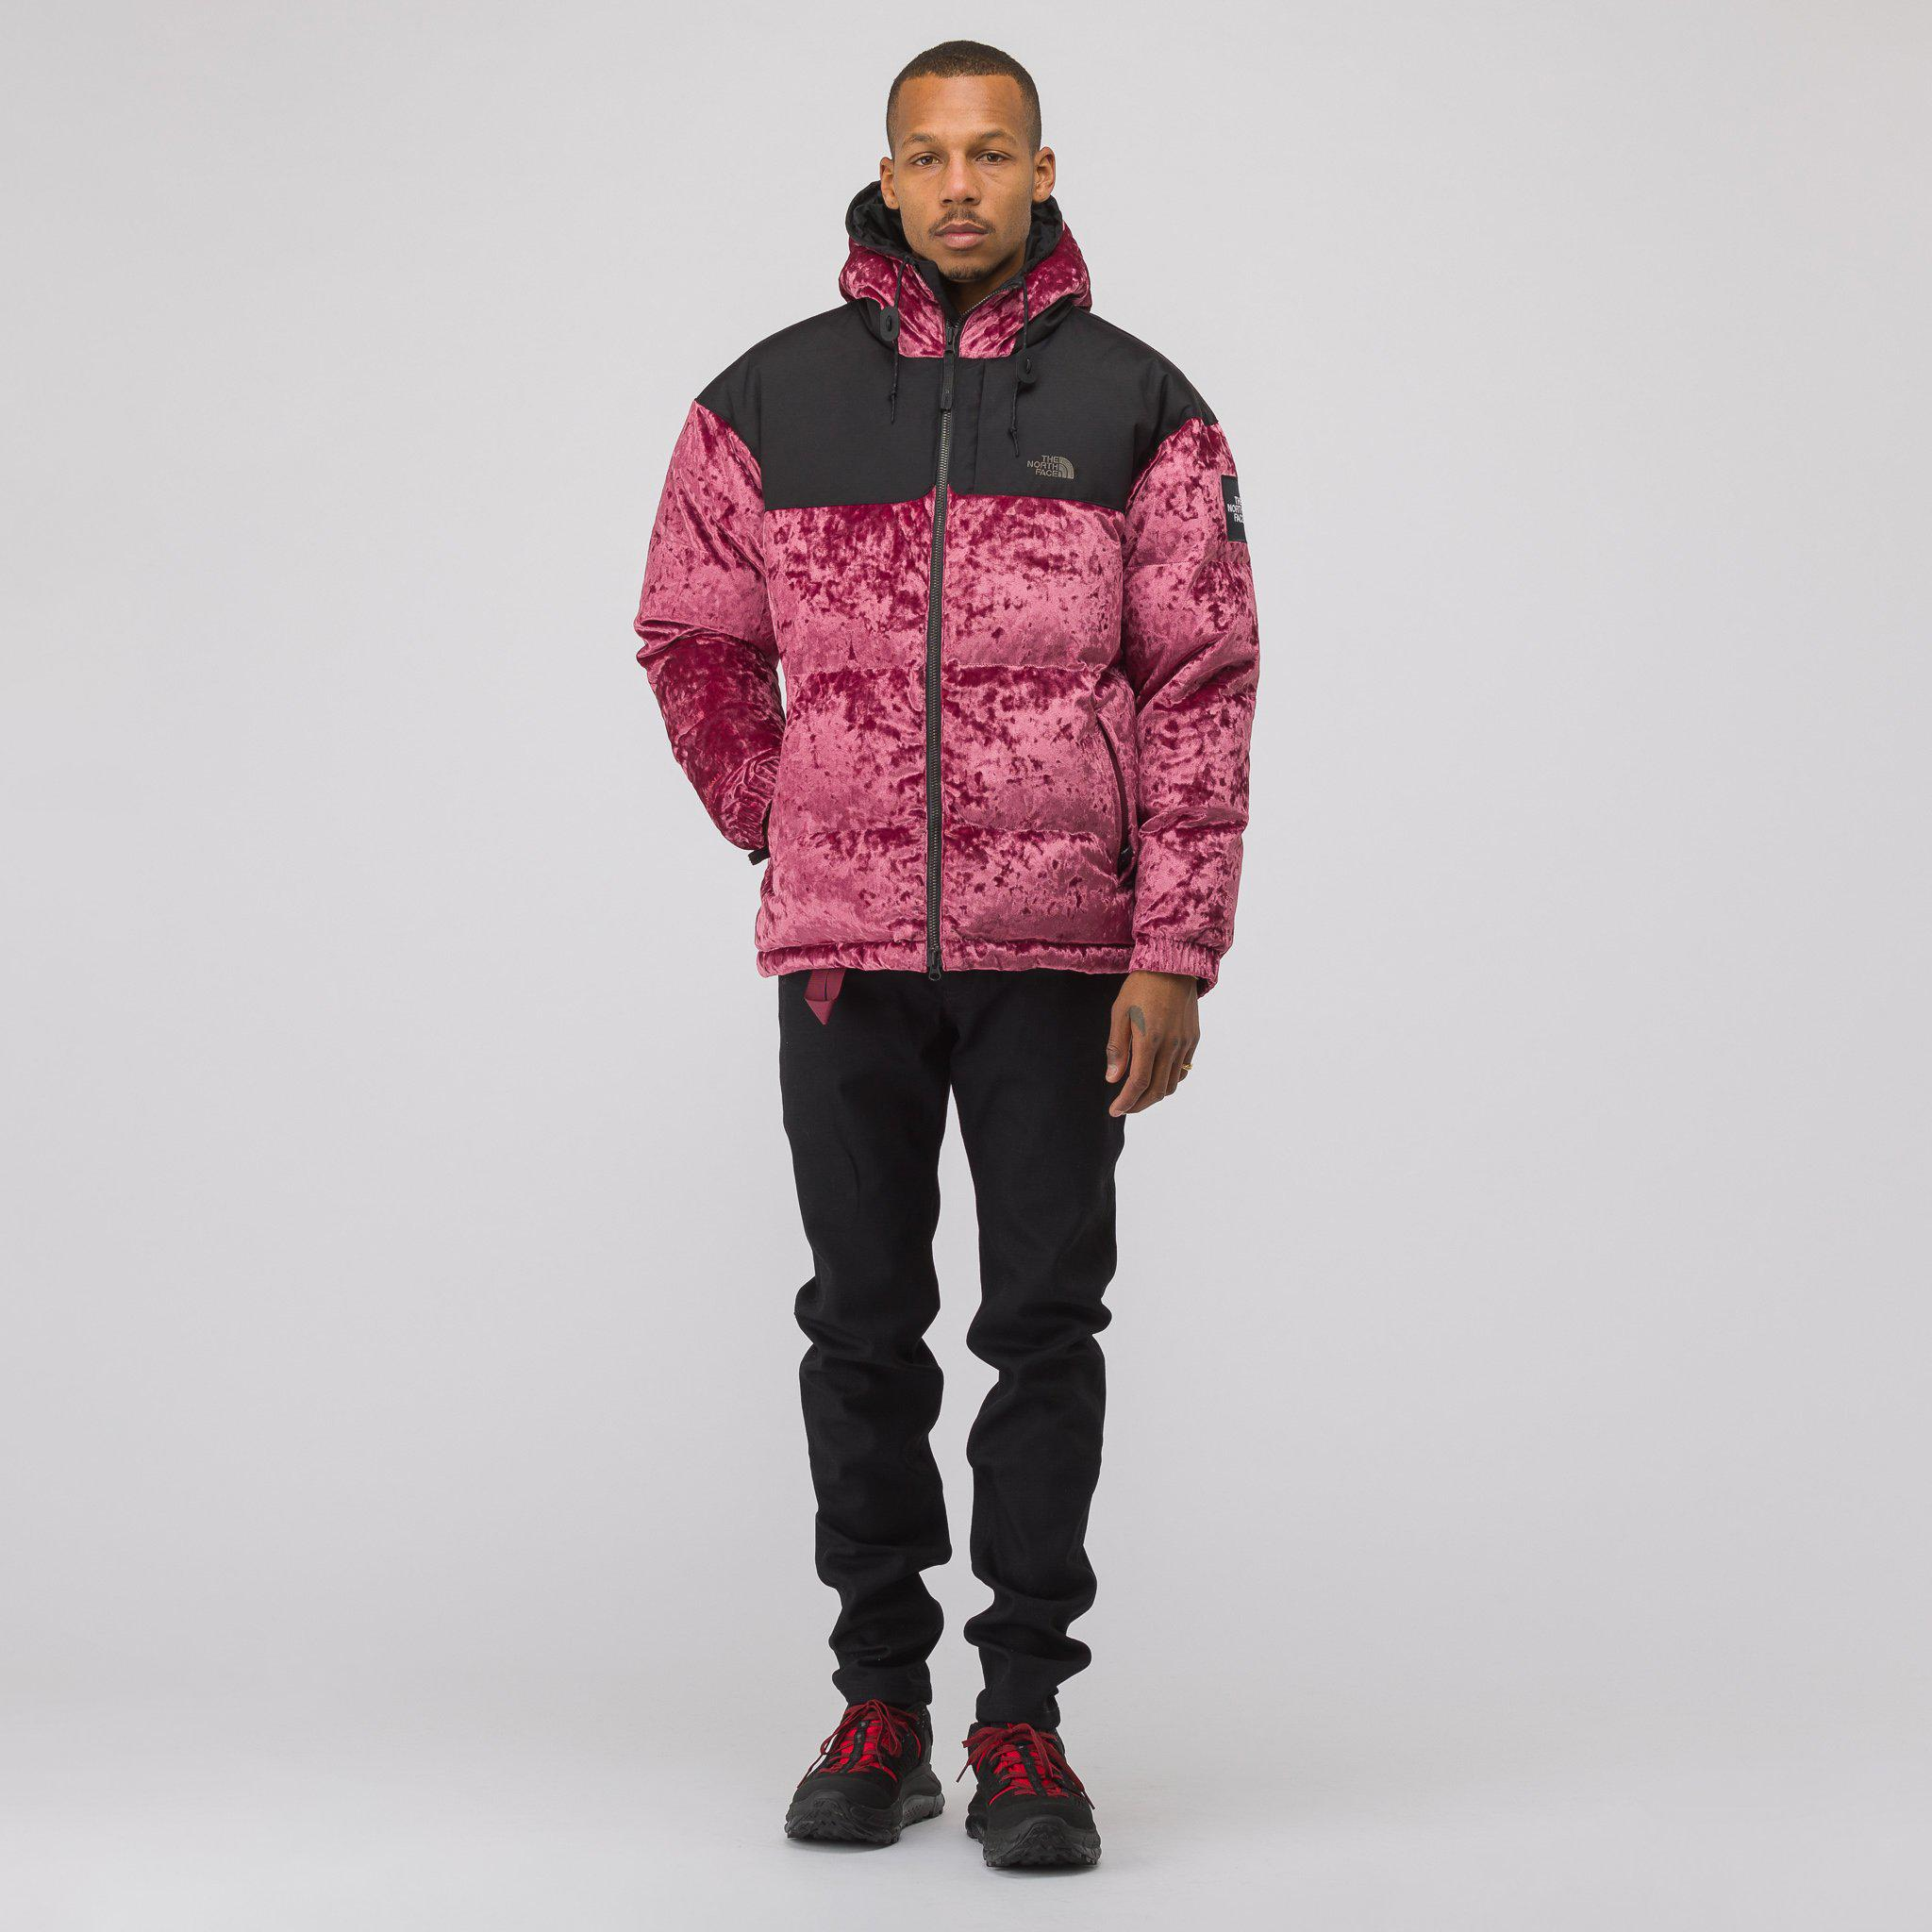 Lyst - The North Face Velvet Nuptse Jacket In Regal Red in Red for Men 719a4a266